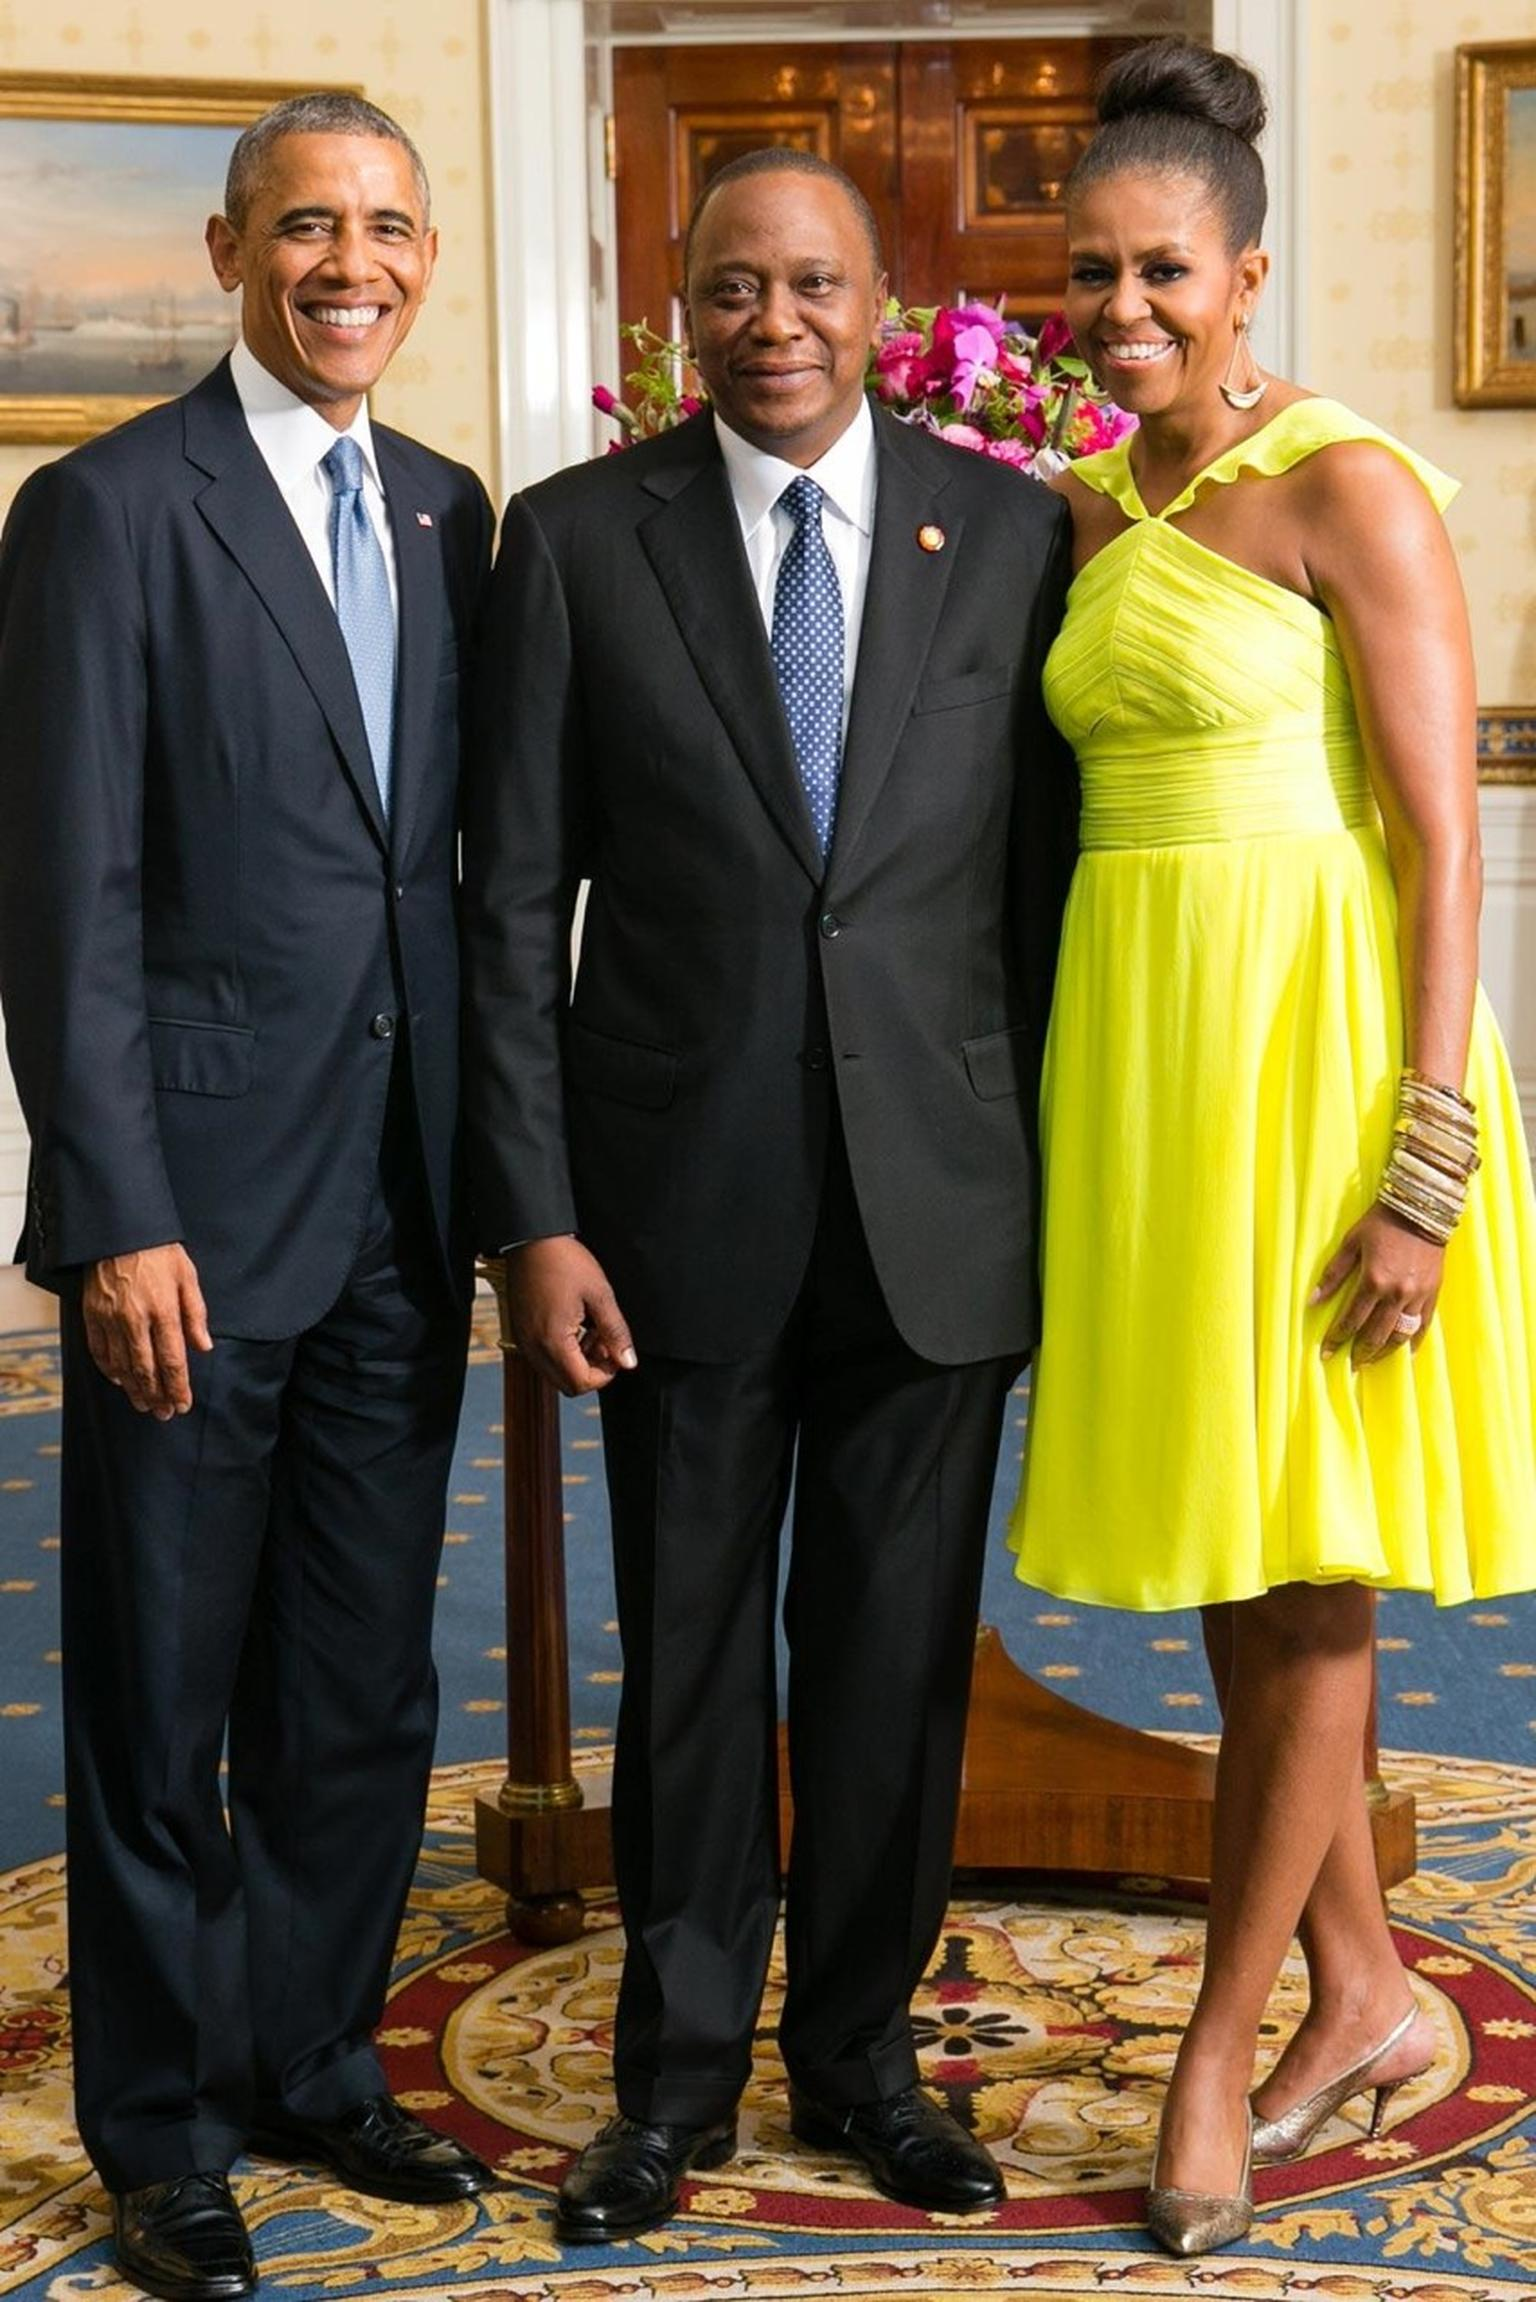 In a symbolic gesture captured in this photograph of the American president and his wife posing with Uhuru Kenyatta - the President of Kenya - the First Lady wore a stack of horn and bronze Nene Bangles by Ashley Pittman, made by artisans in workshops in